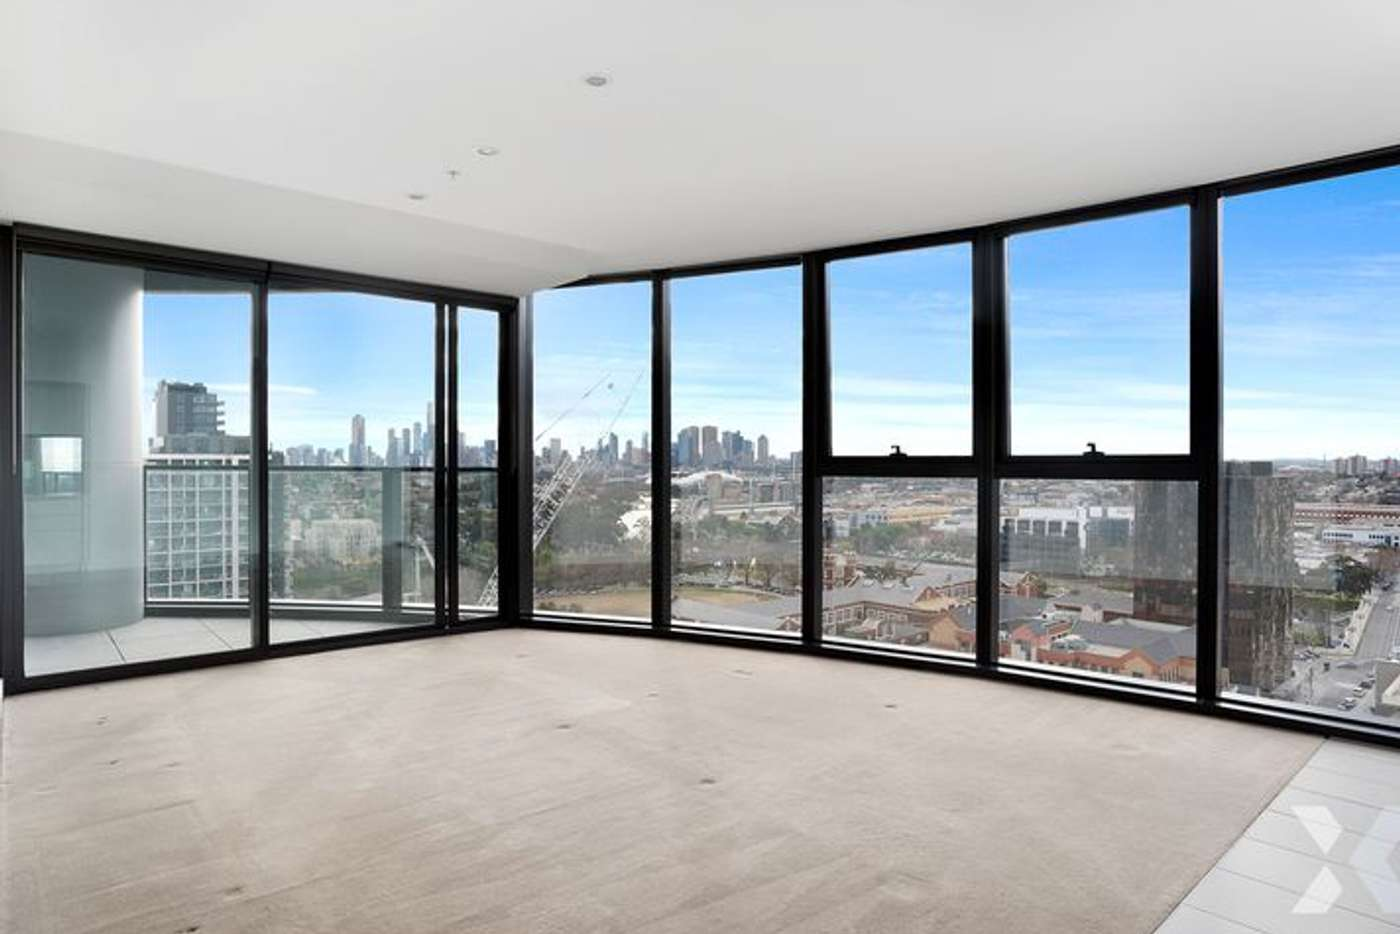 Main view of Homely apartment listing, 707/35 Malcolm Street, South Yarra VIC 3141